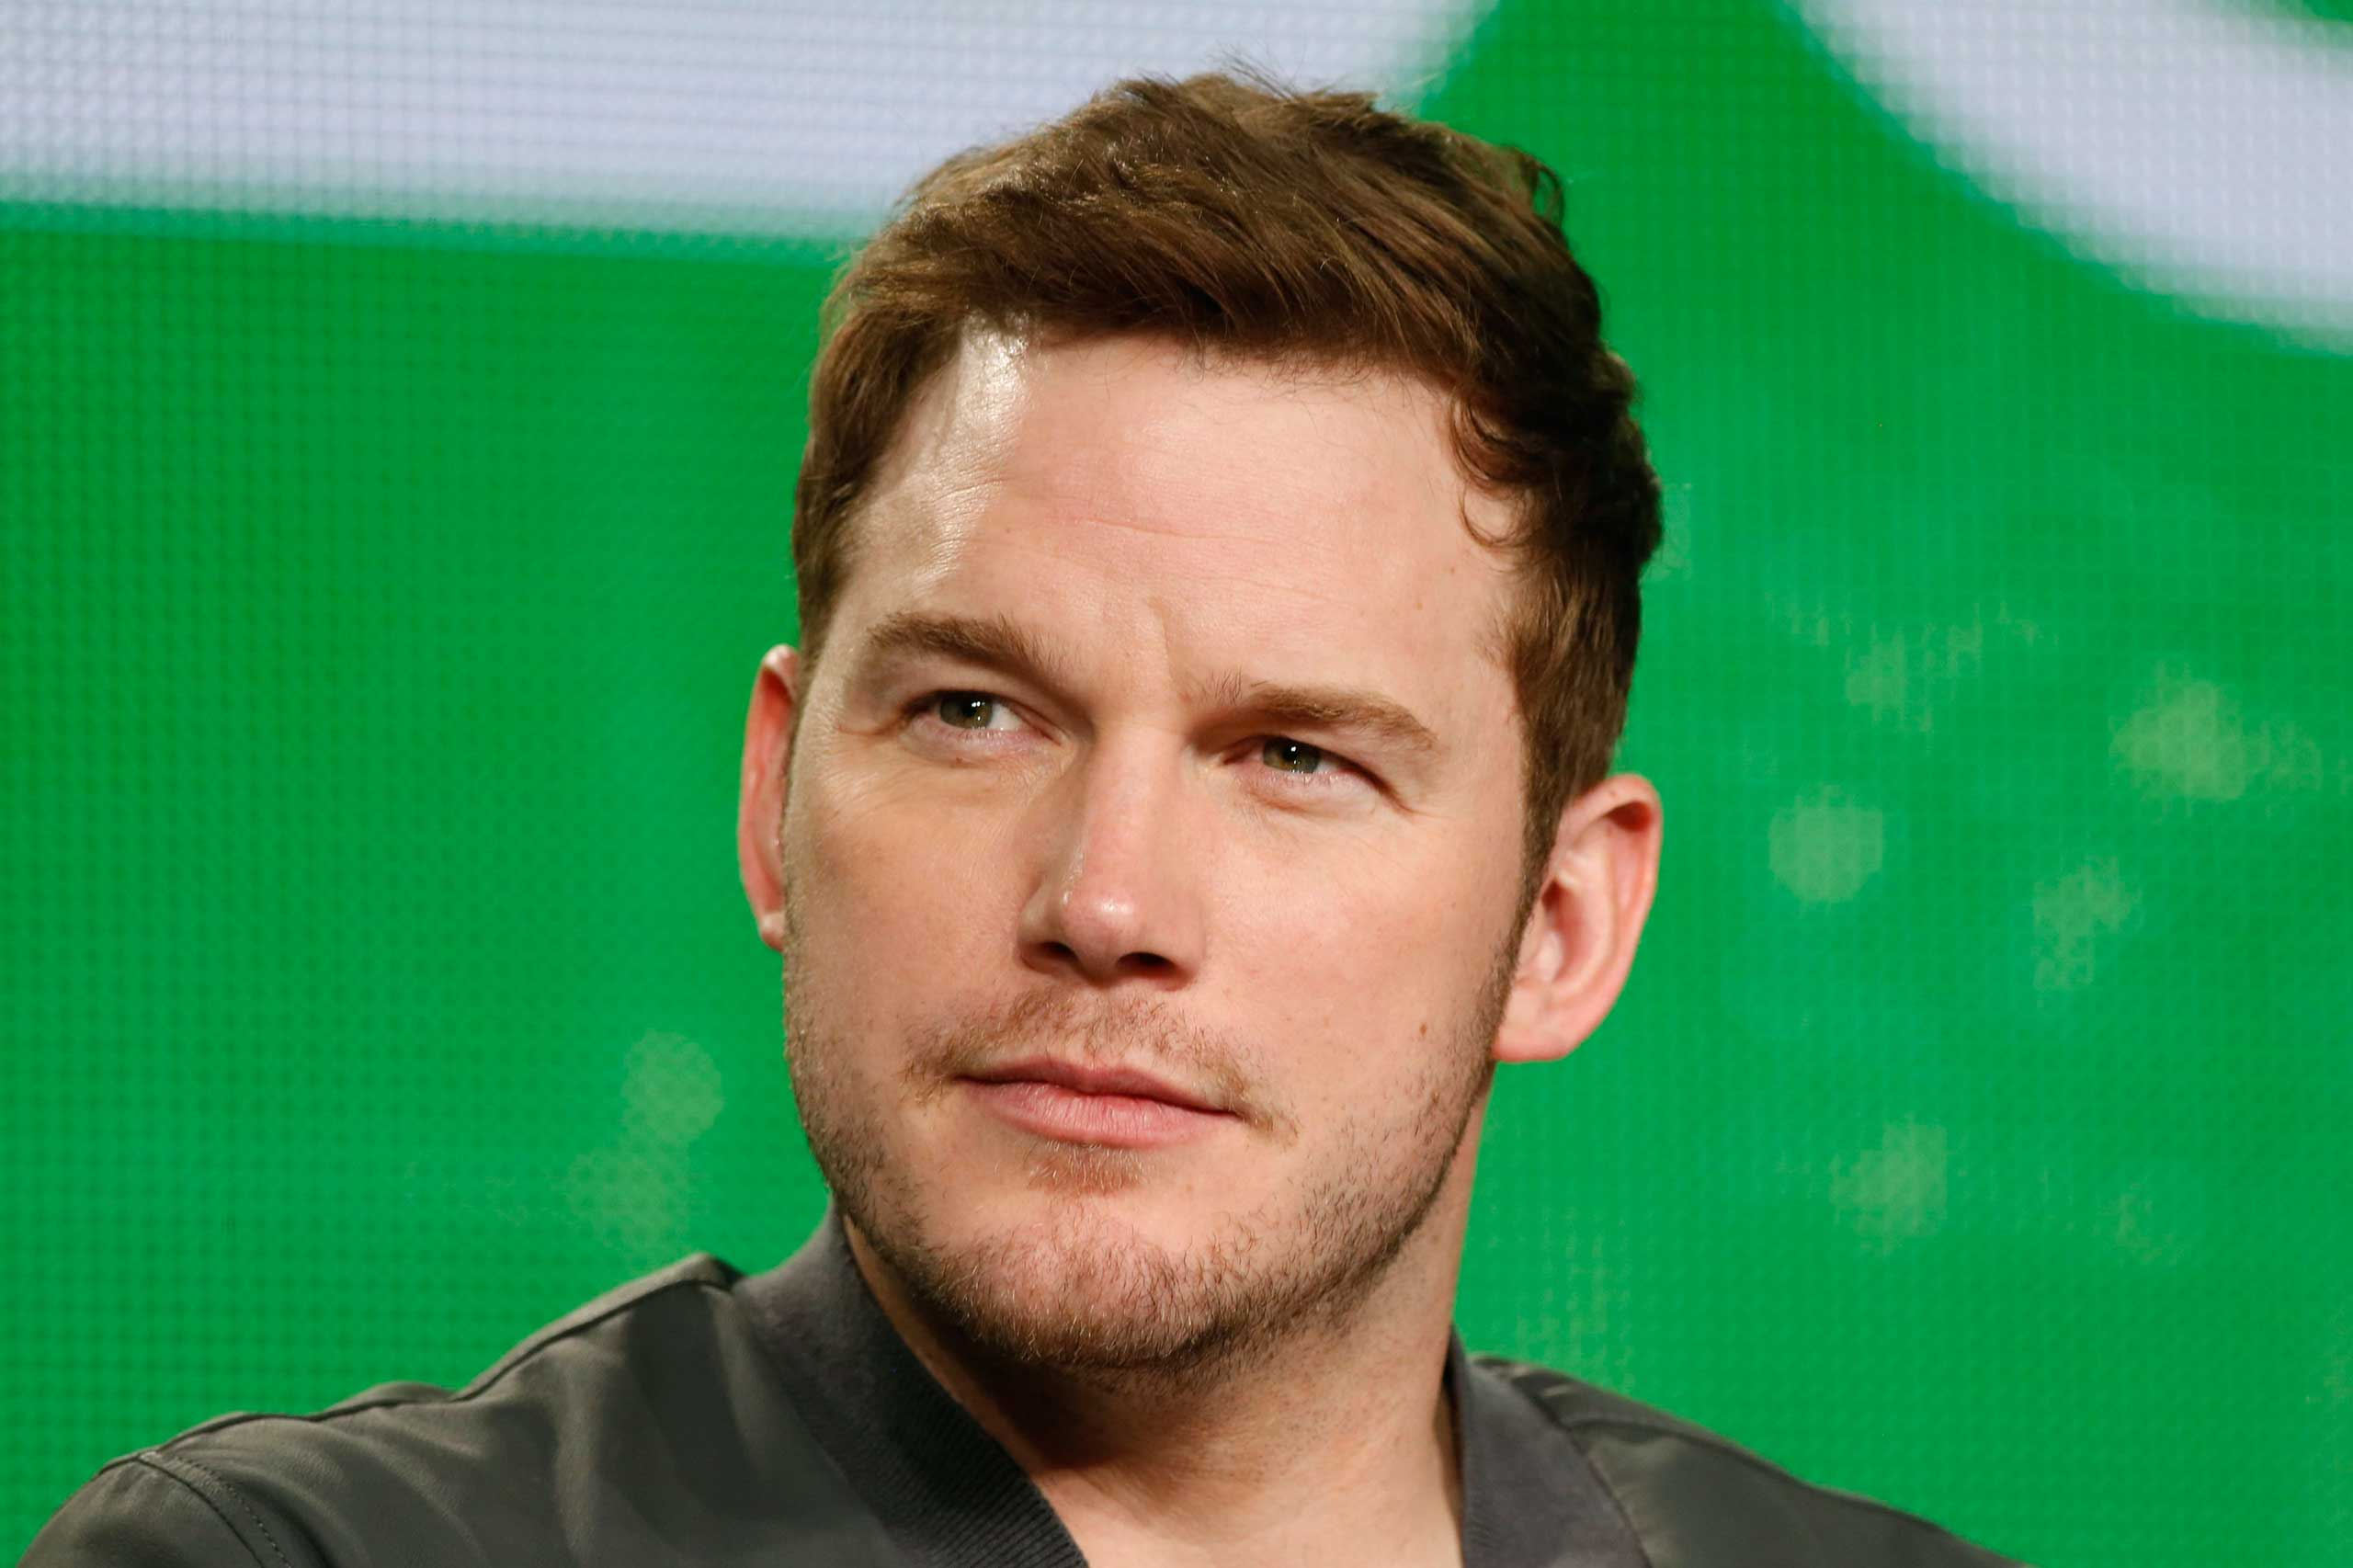 Chris Pratt speaks about the NBC television show  Parks and Recreation  during the TCA presentations in Pasadena, Calif., Jan. 16, 2015.